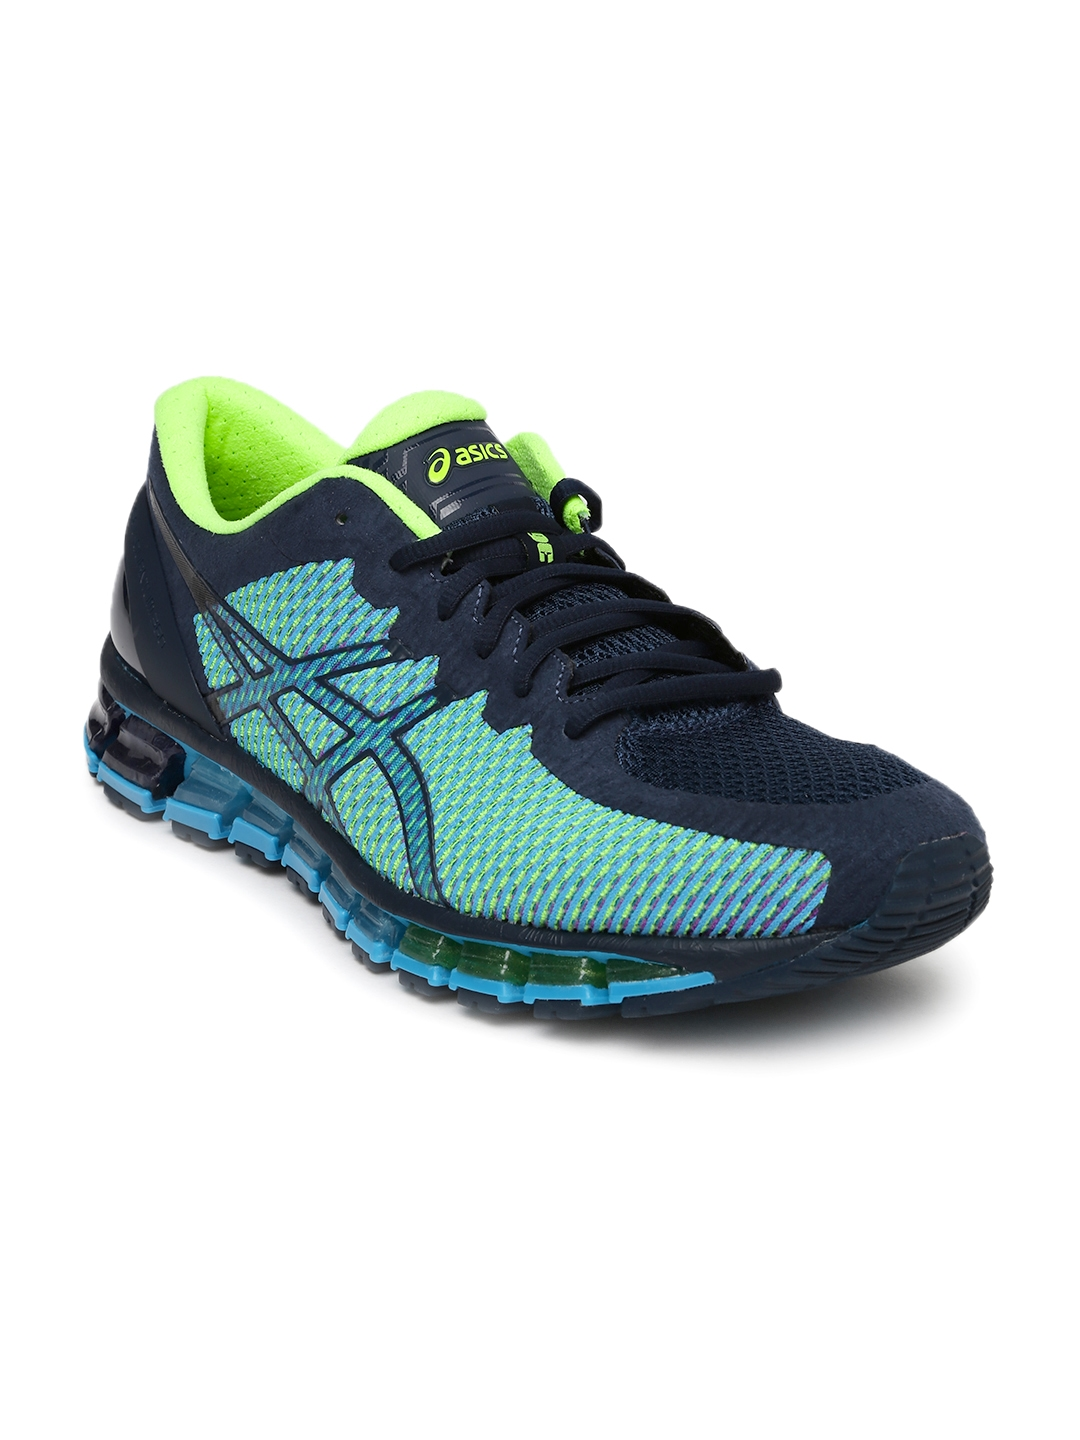 7d64ae1ebc10 Buy ASICS Men Navy Blue Gel Quantum 360 2 Running Shoes - Sports ...